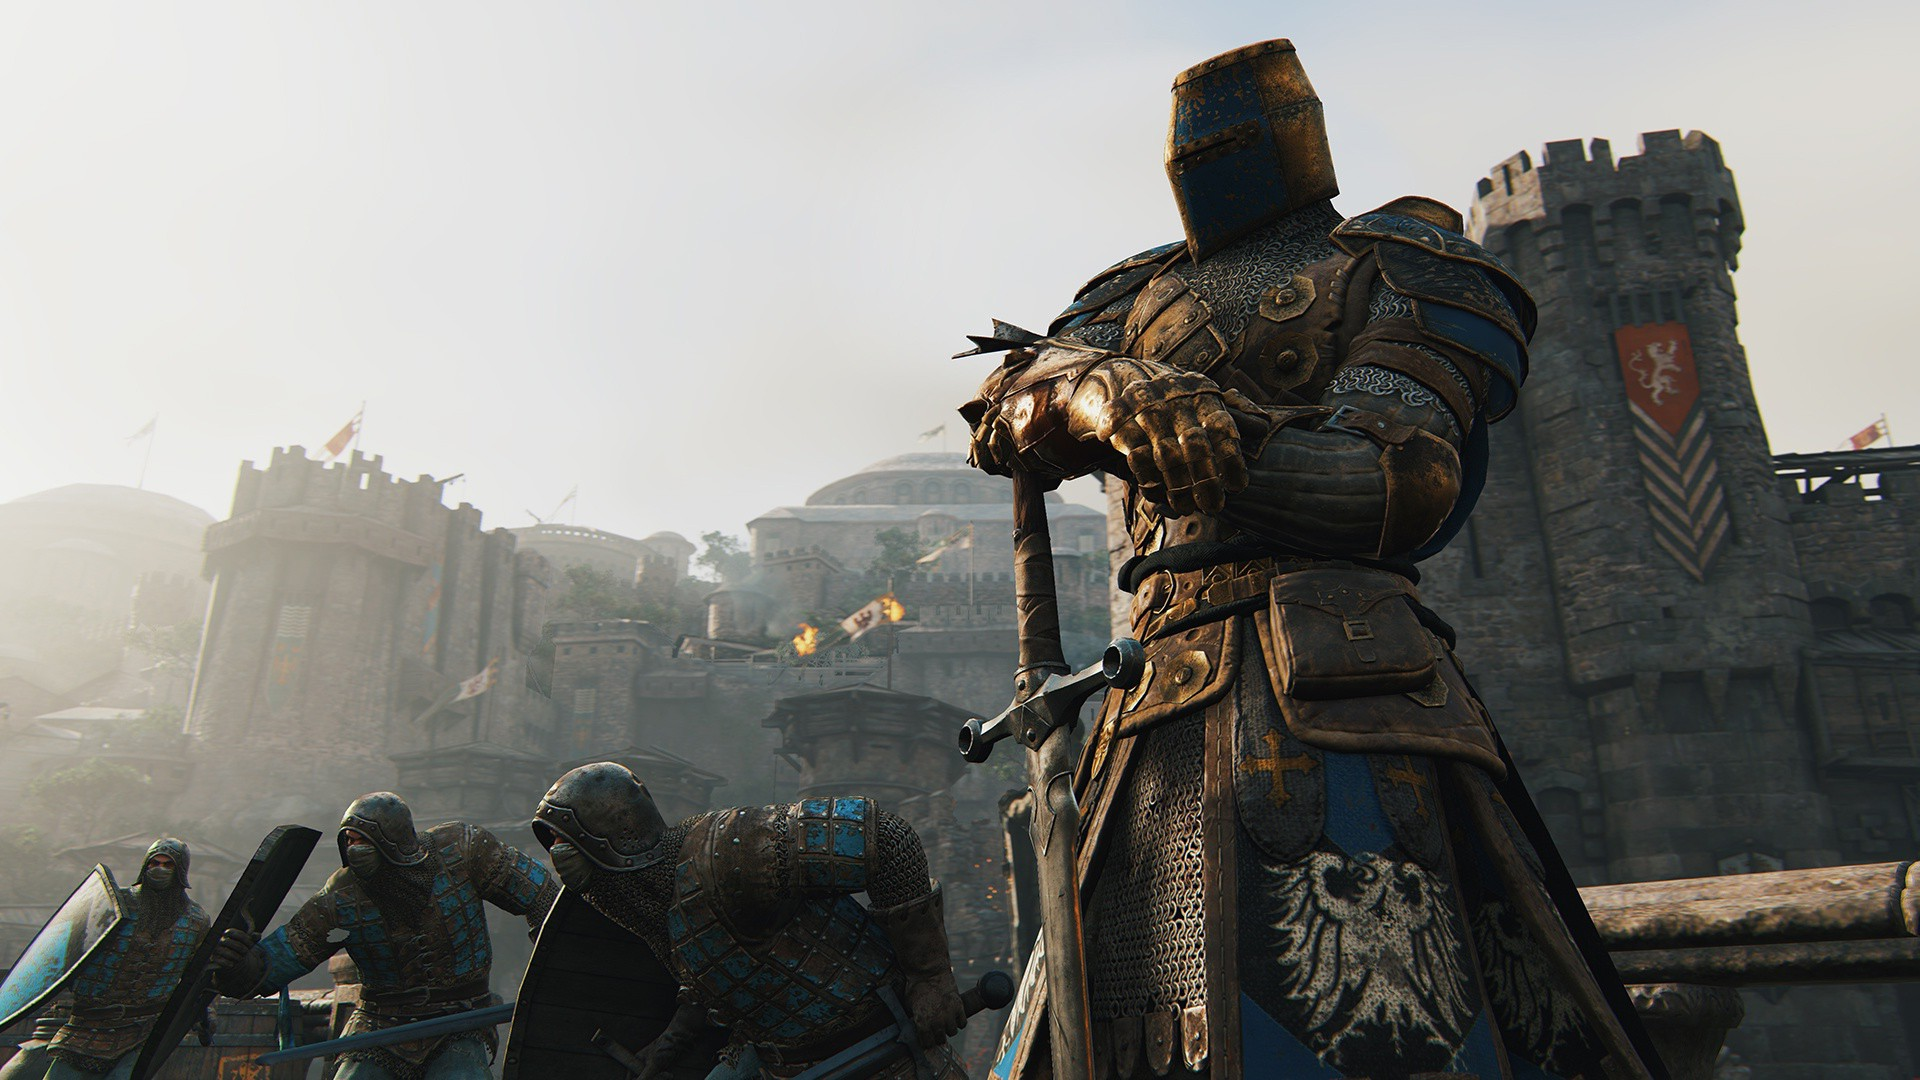 For Honor Game 2017 1080p - Honor Hd - HD Wallpaper